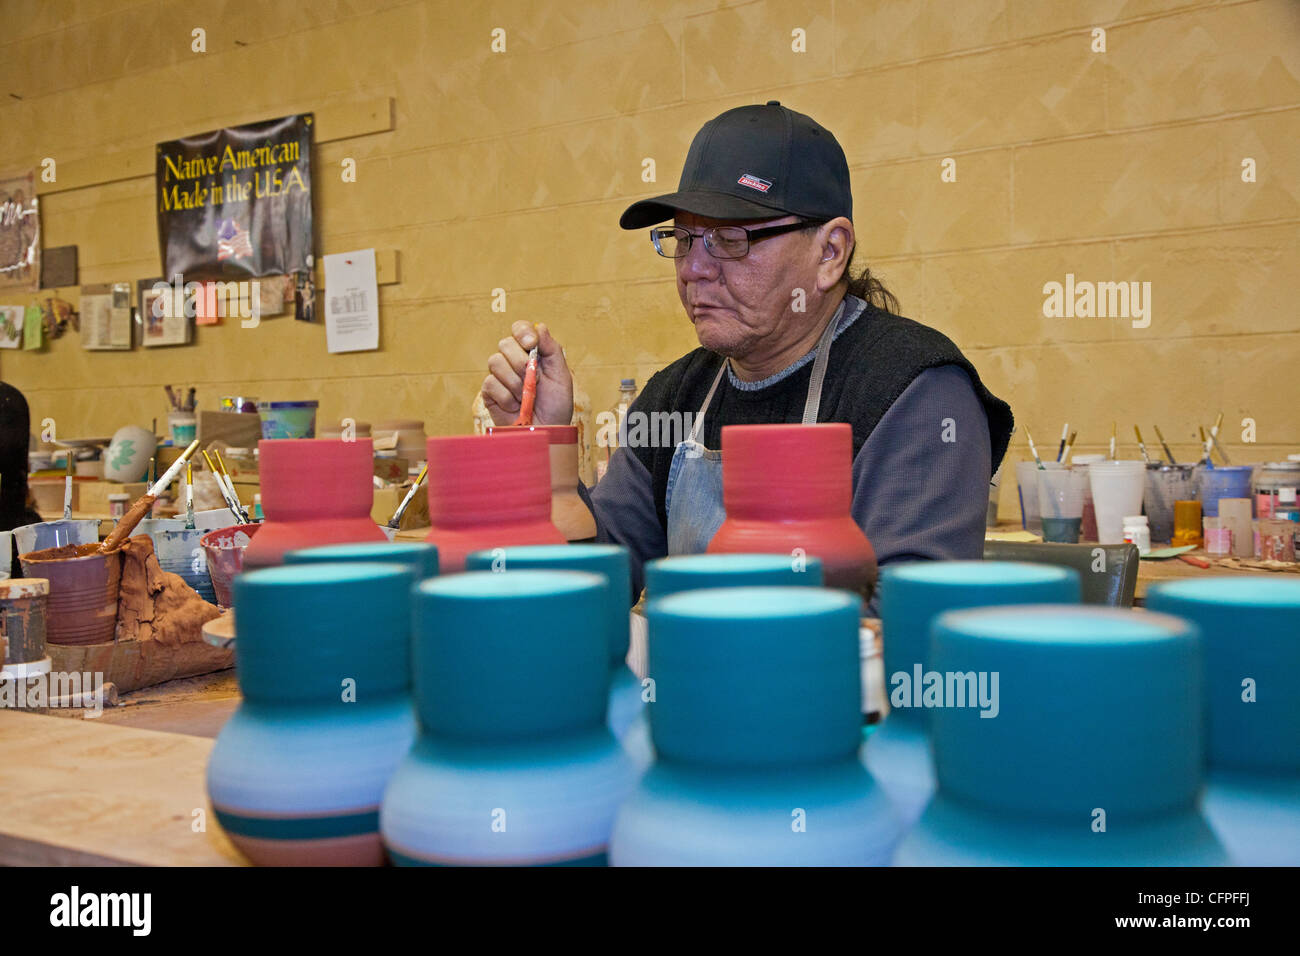 Rapid City, South Dakota - Del Loefer, a member of the Rosebud Sioux, creates pottery at Sioux Pottery. - Stock Image